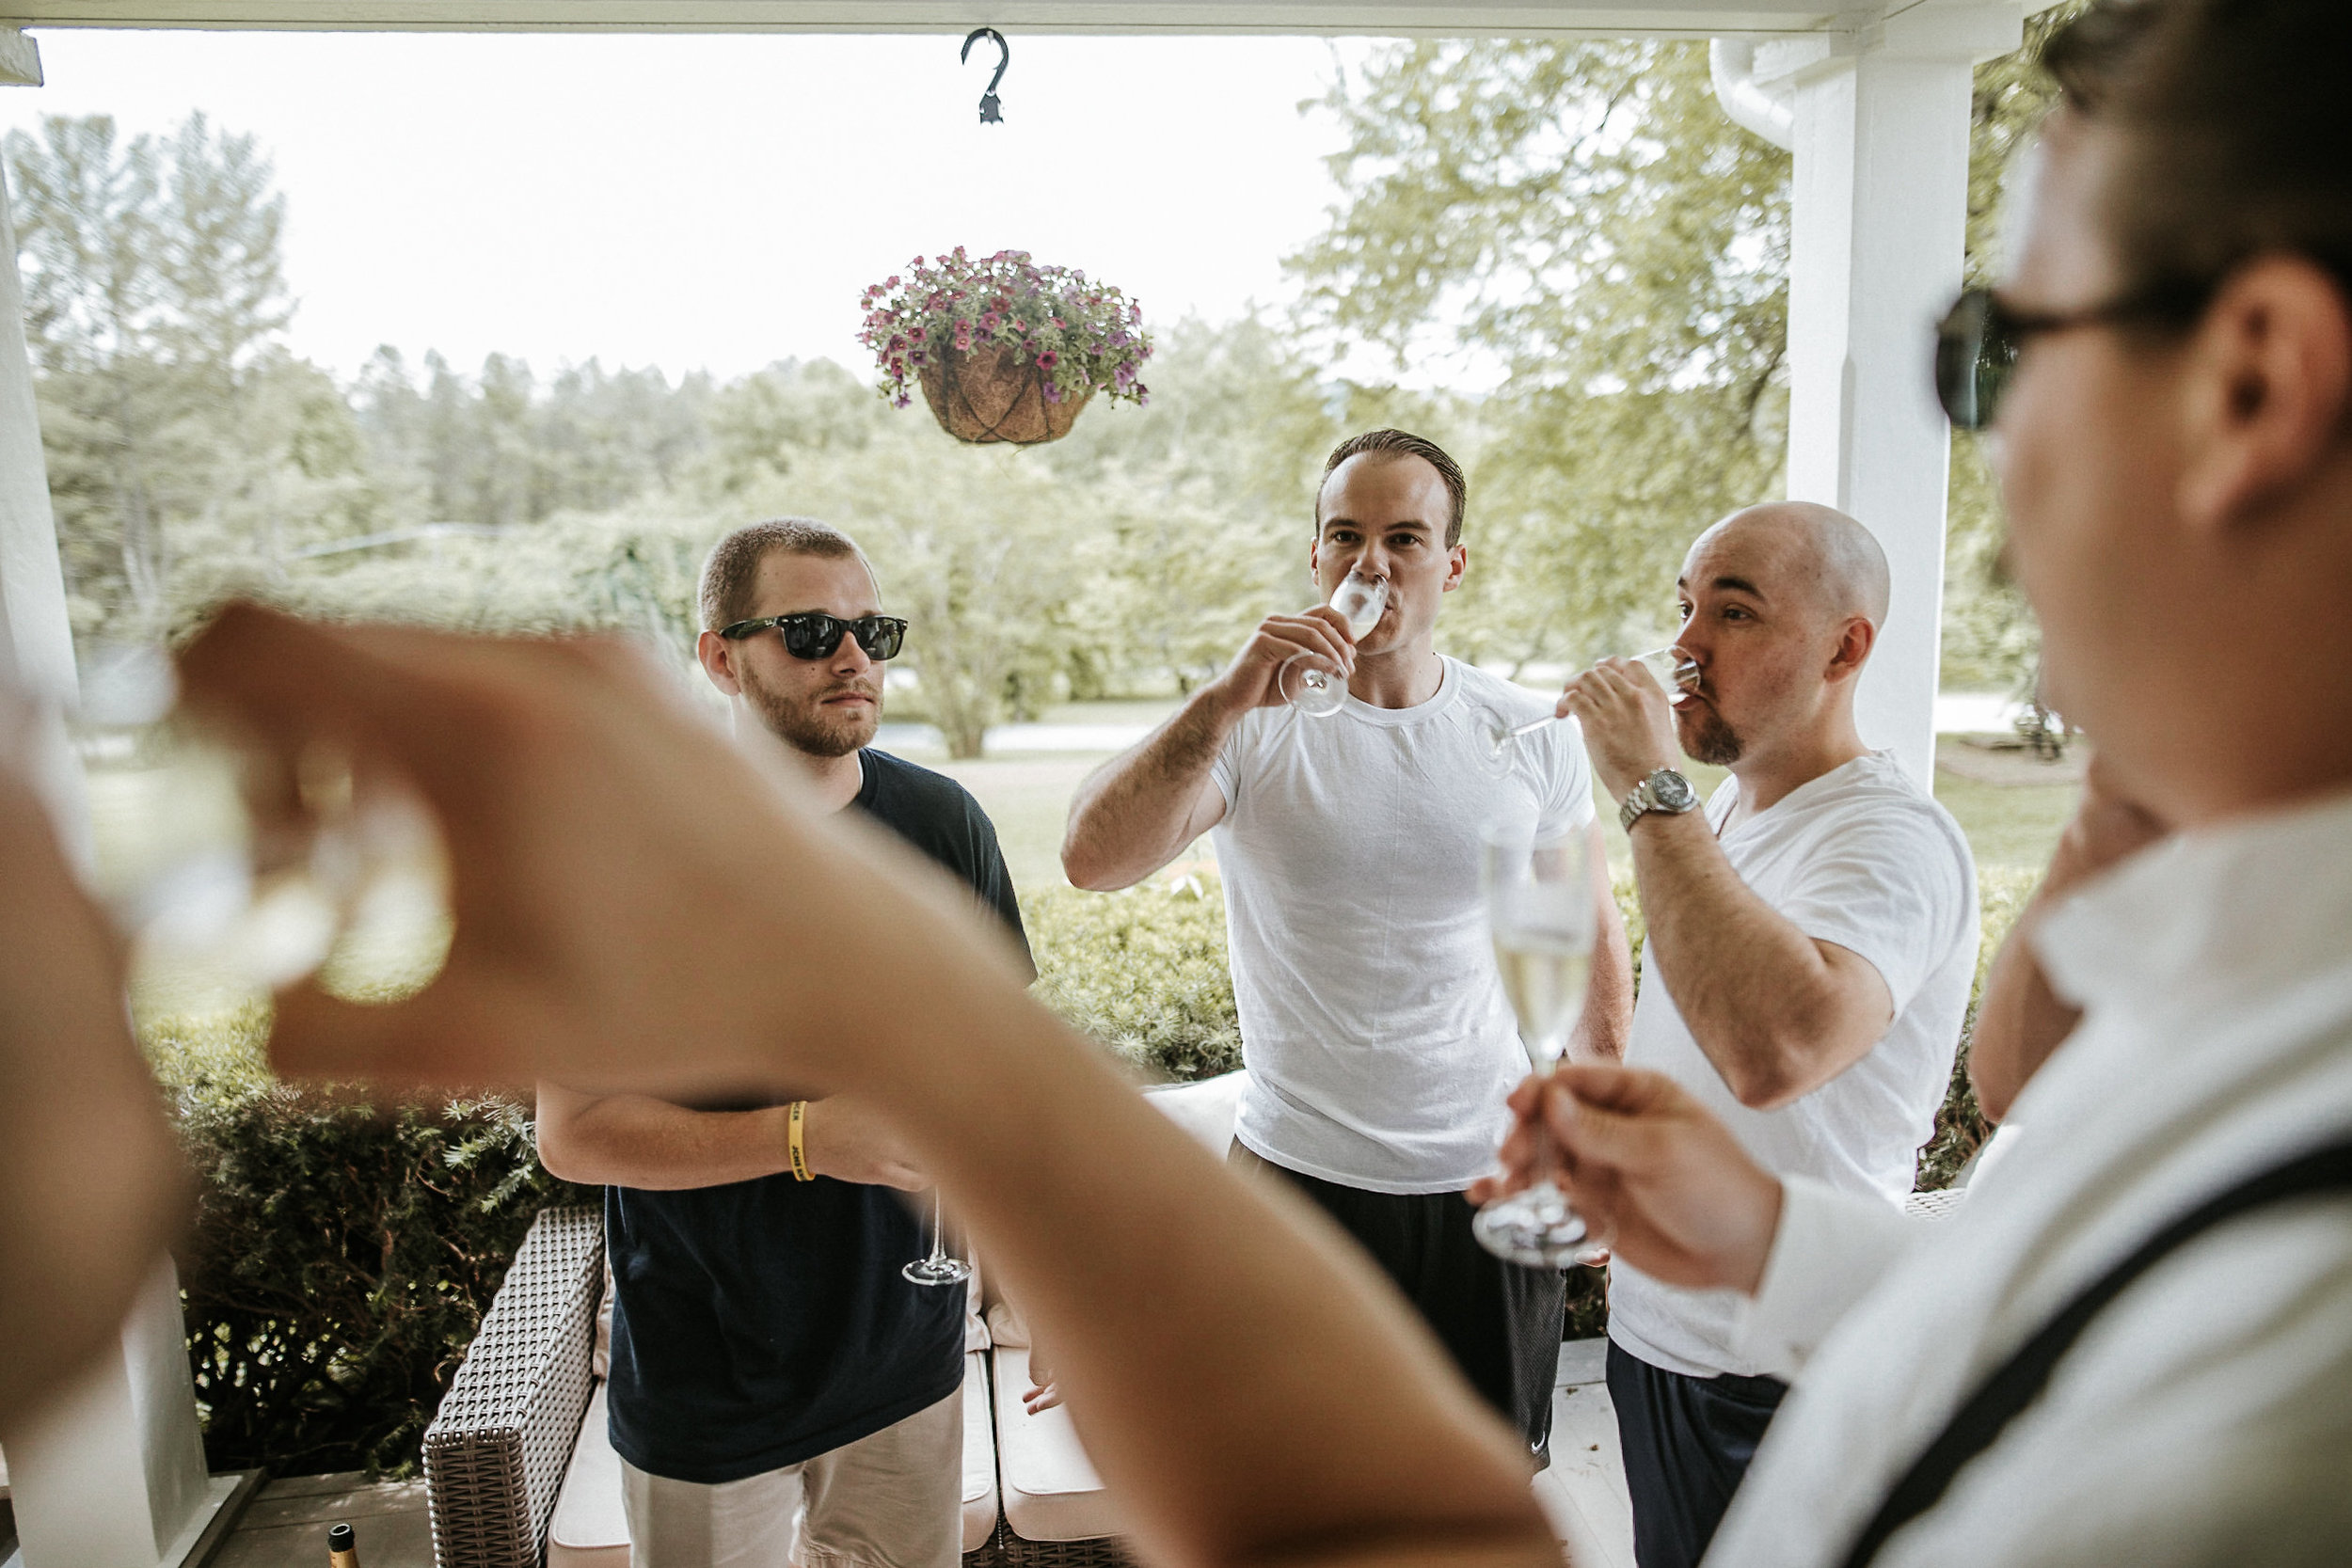 Groom drinking champagne with groomsmen